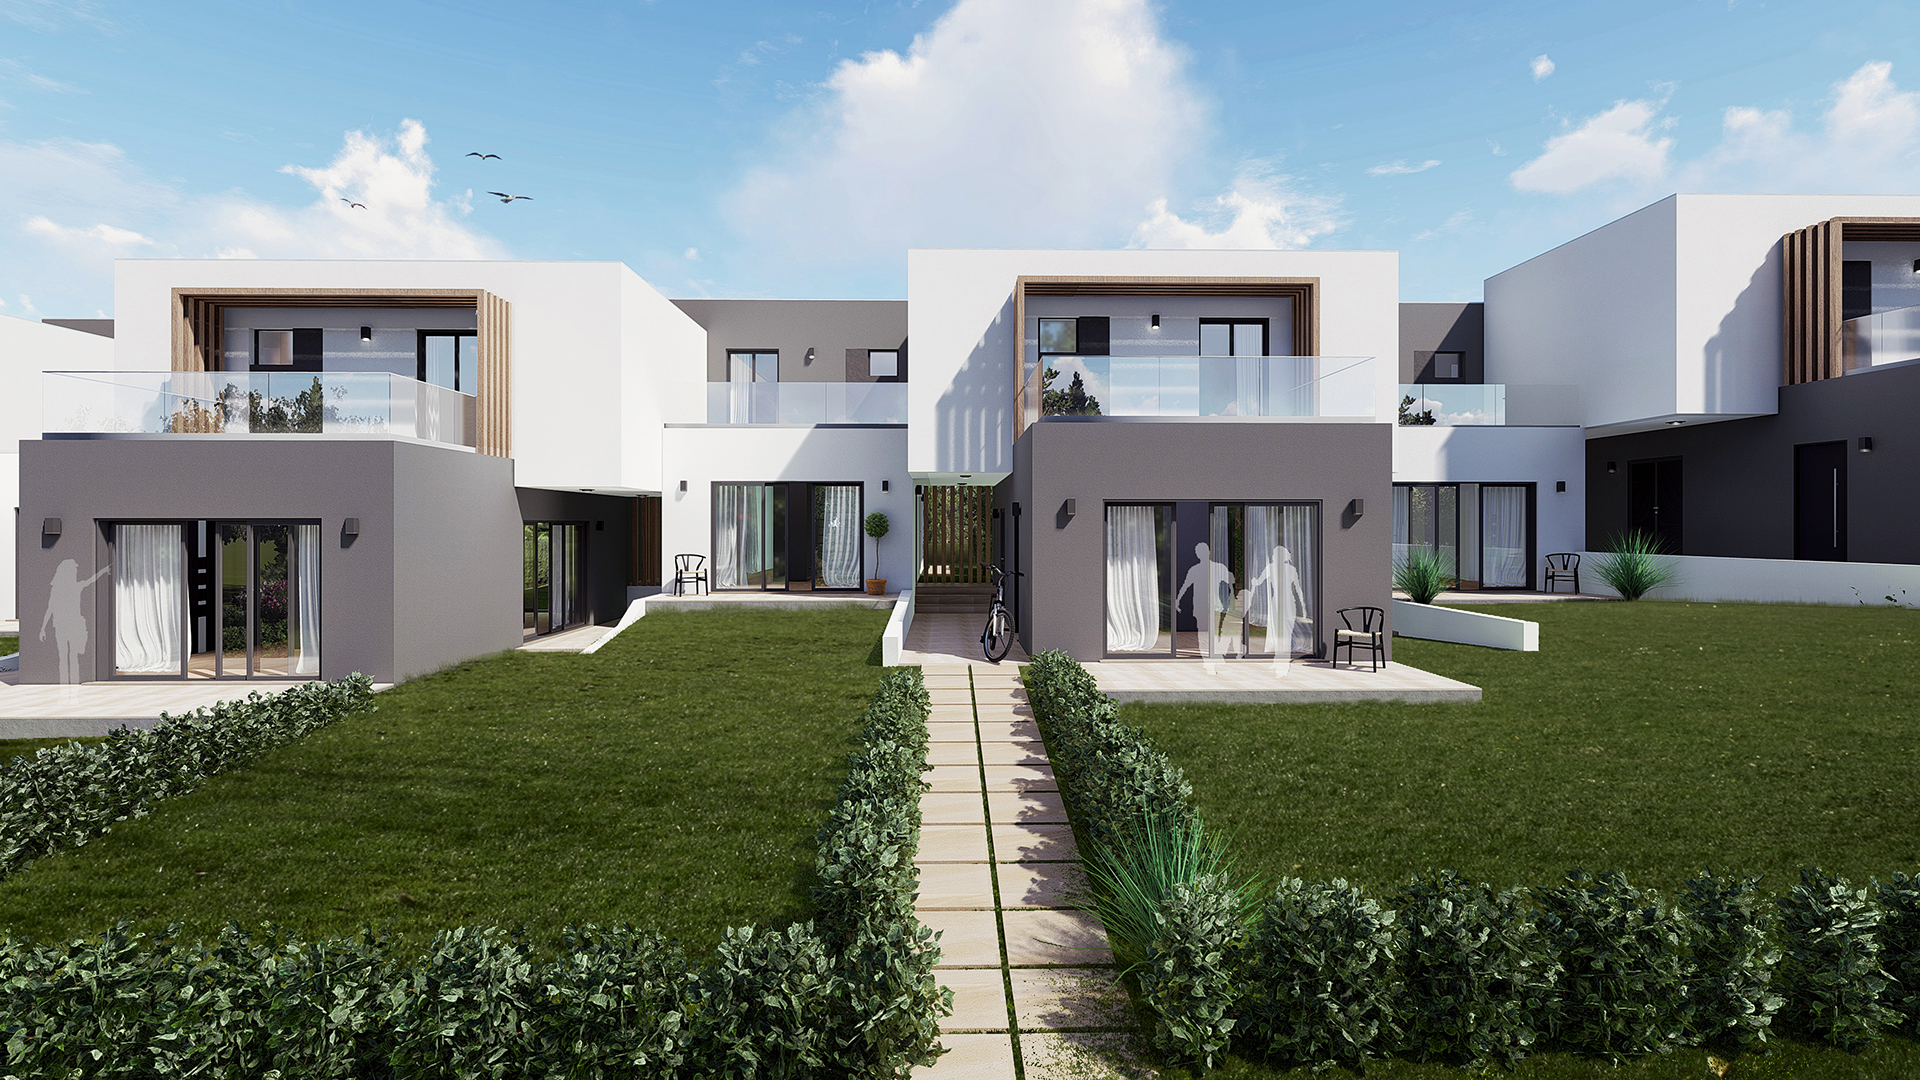 2 Bedroom Duplex apartments under construction on Golf Resort, Silves | PCG1625 Off-plan two bedroom duplex apartments set on a golf course with lovely views. Close to the historic town of Silves and all amenities. Rental potential and golf privileges.